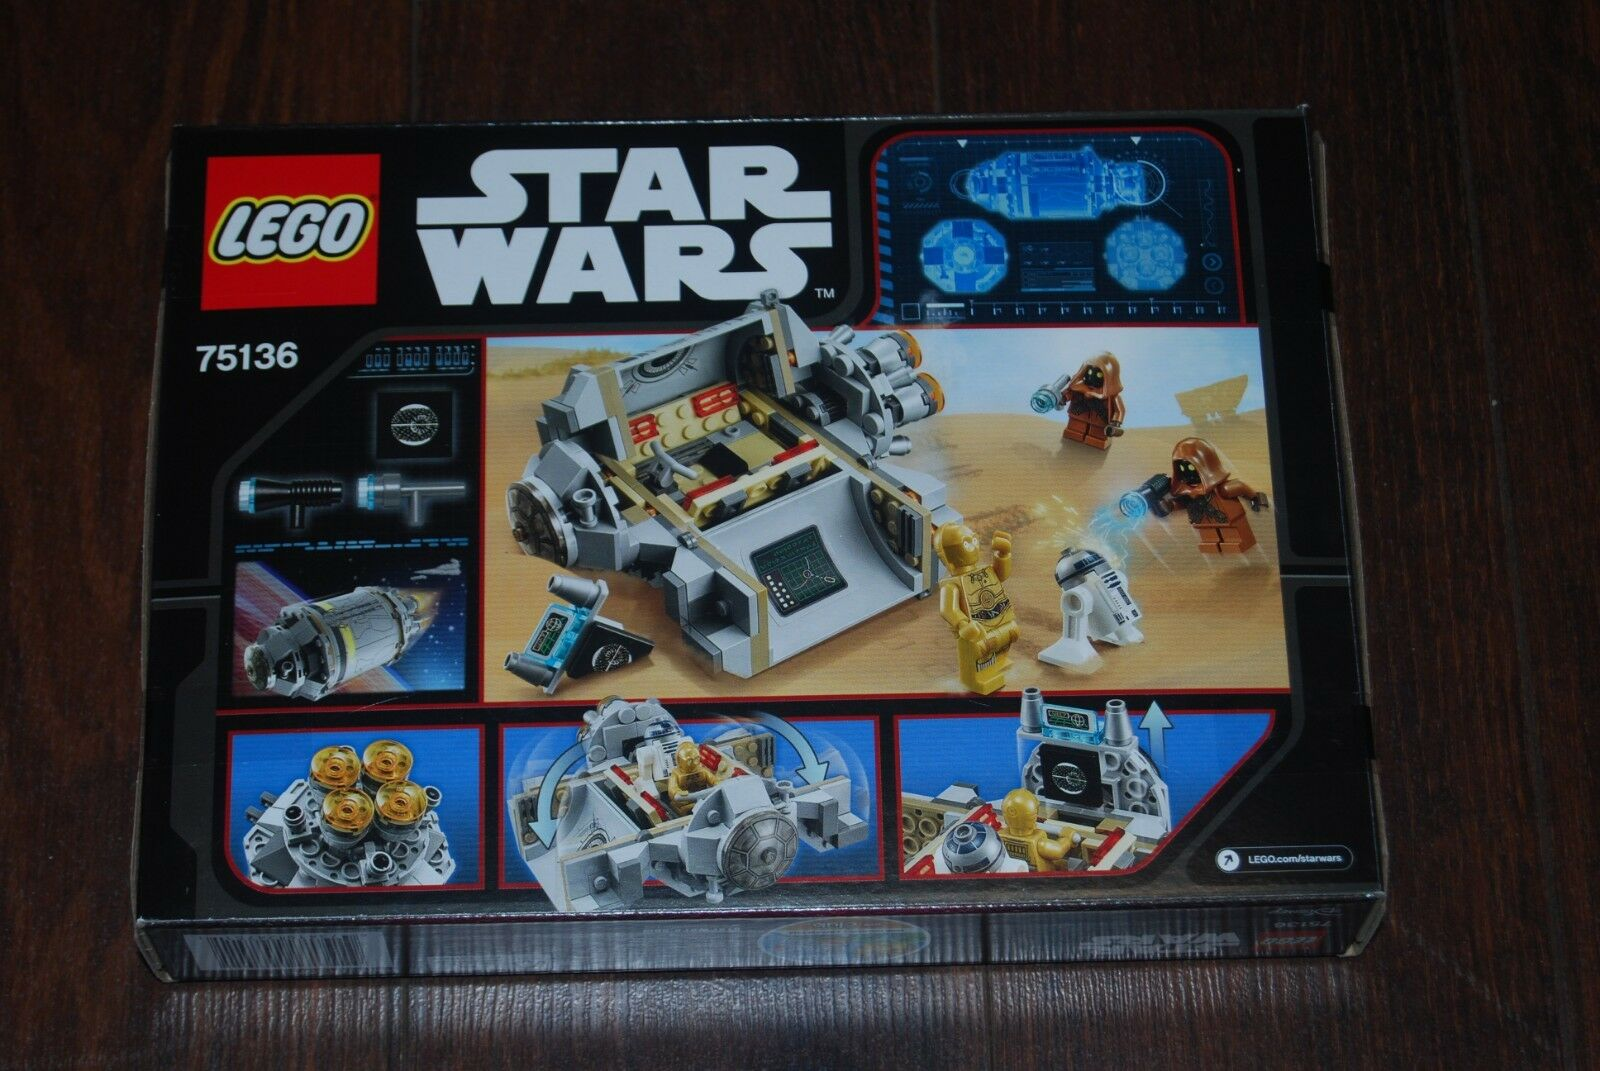 LEGO StarWars Droid Droid Droid Escape Pod New Sealed  RETIRED  75136 c705a5